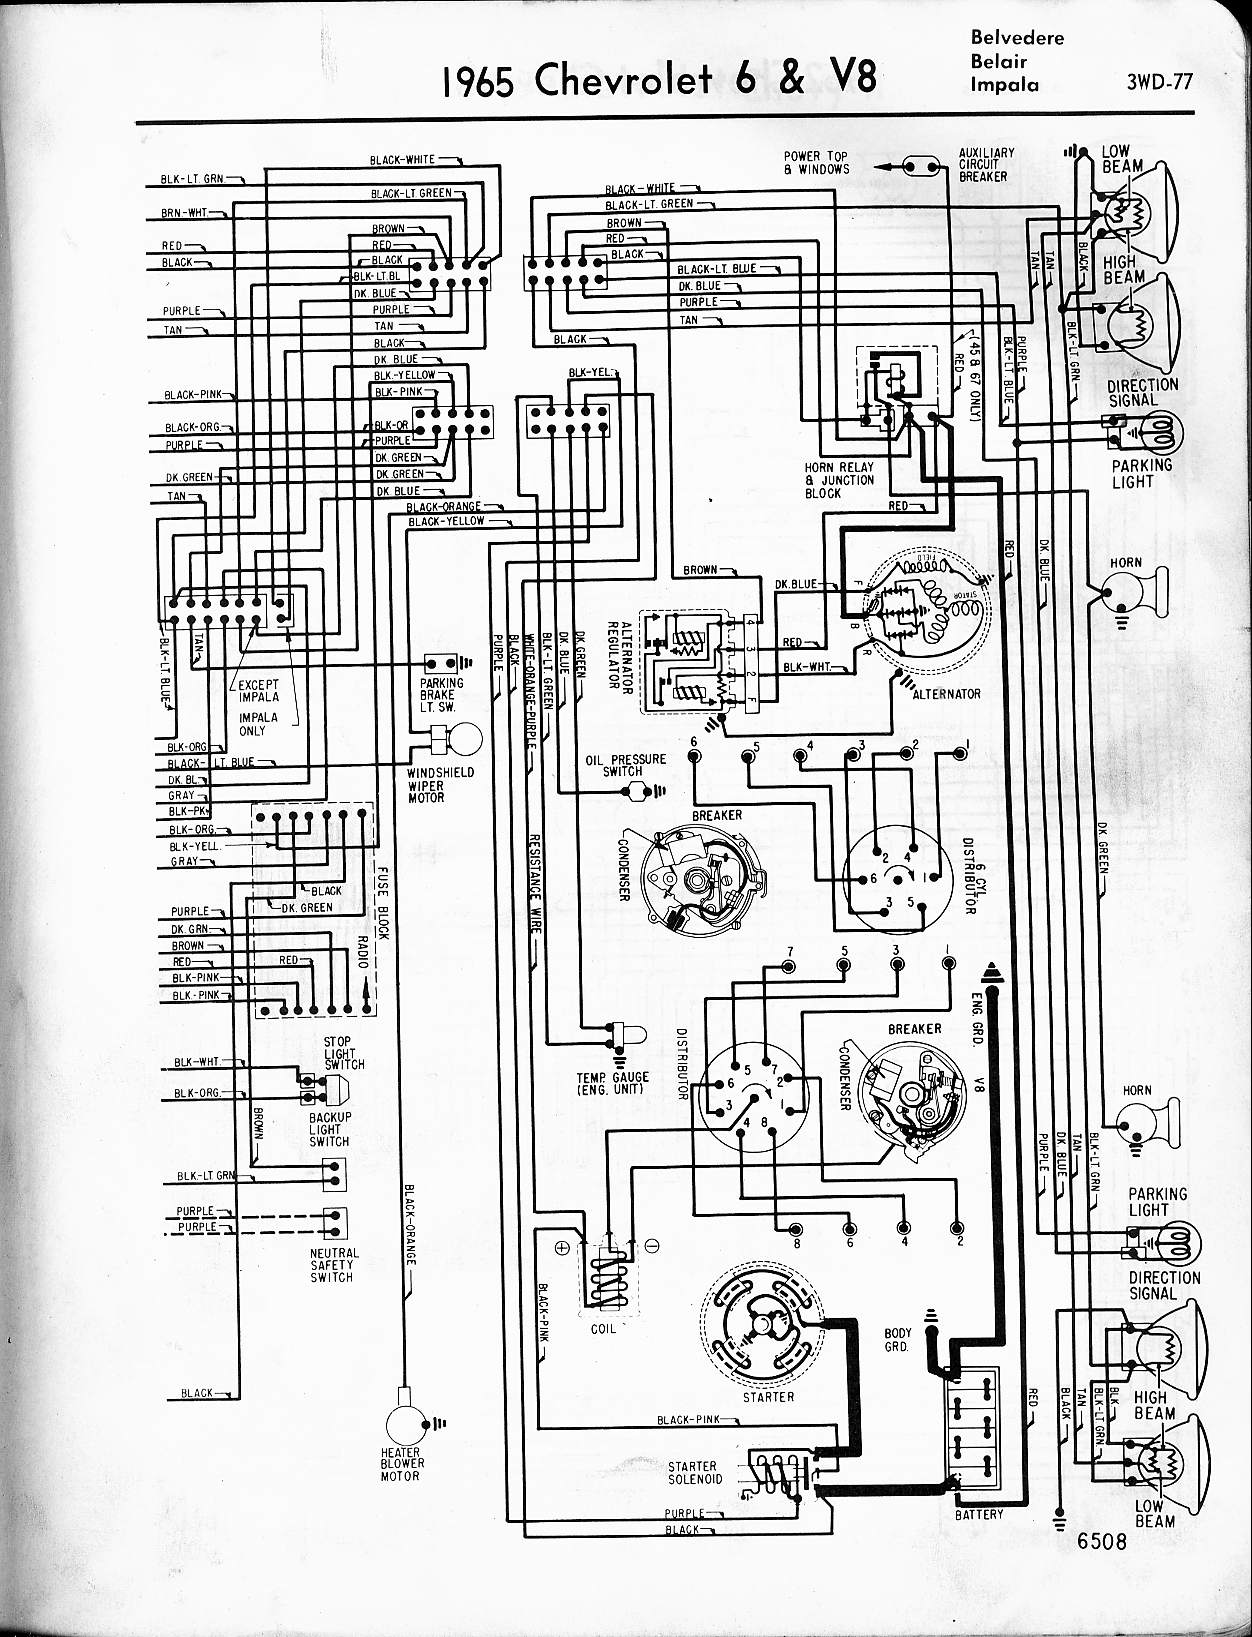 Wiring A 280z V8 - Wiring Diagrams on